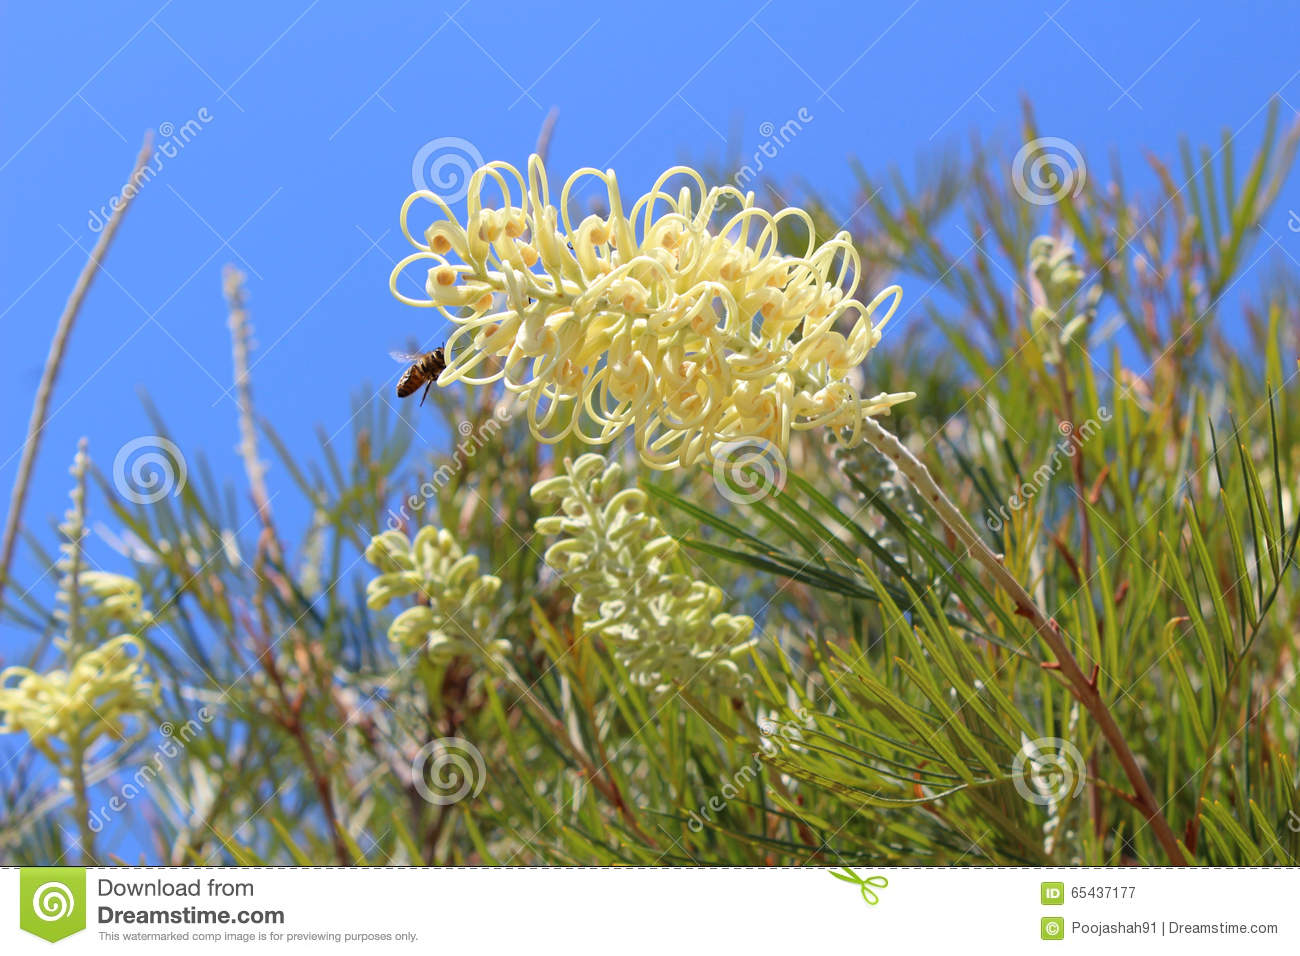 Yellow grevillea flowers with a bee stock image image of flying download yellow grevillea flowers with a bee stock image image of flying yellow mightylinksfo